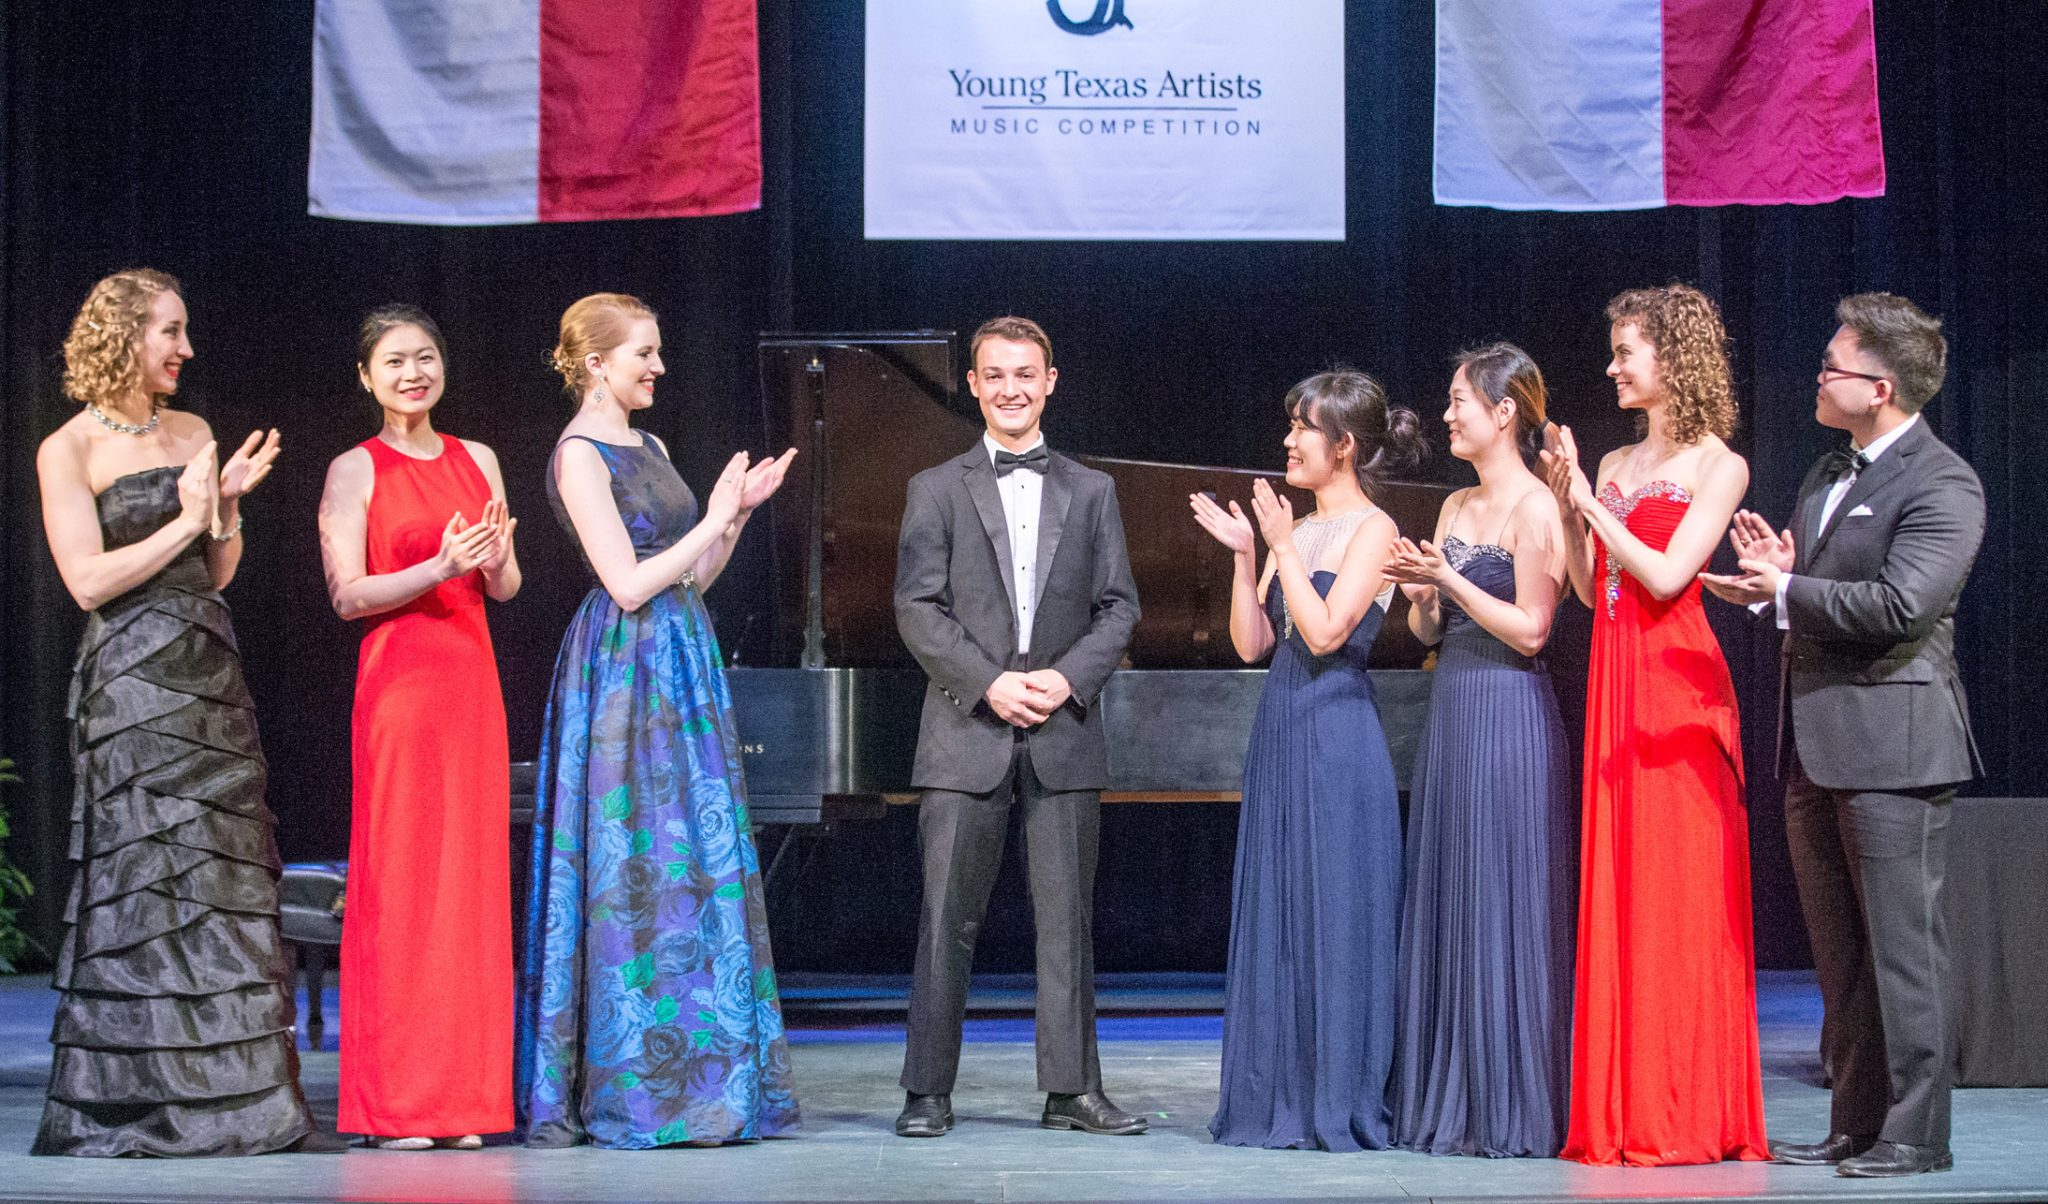 Young Texas Artists Music Competition Honored Best of the Best at Finalists' Concert & Awards